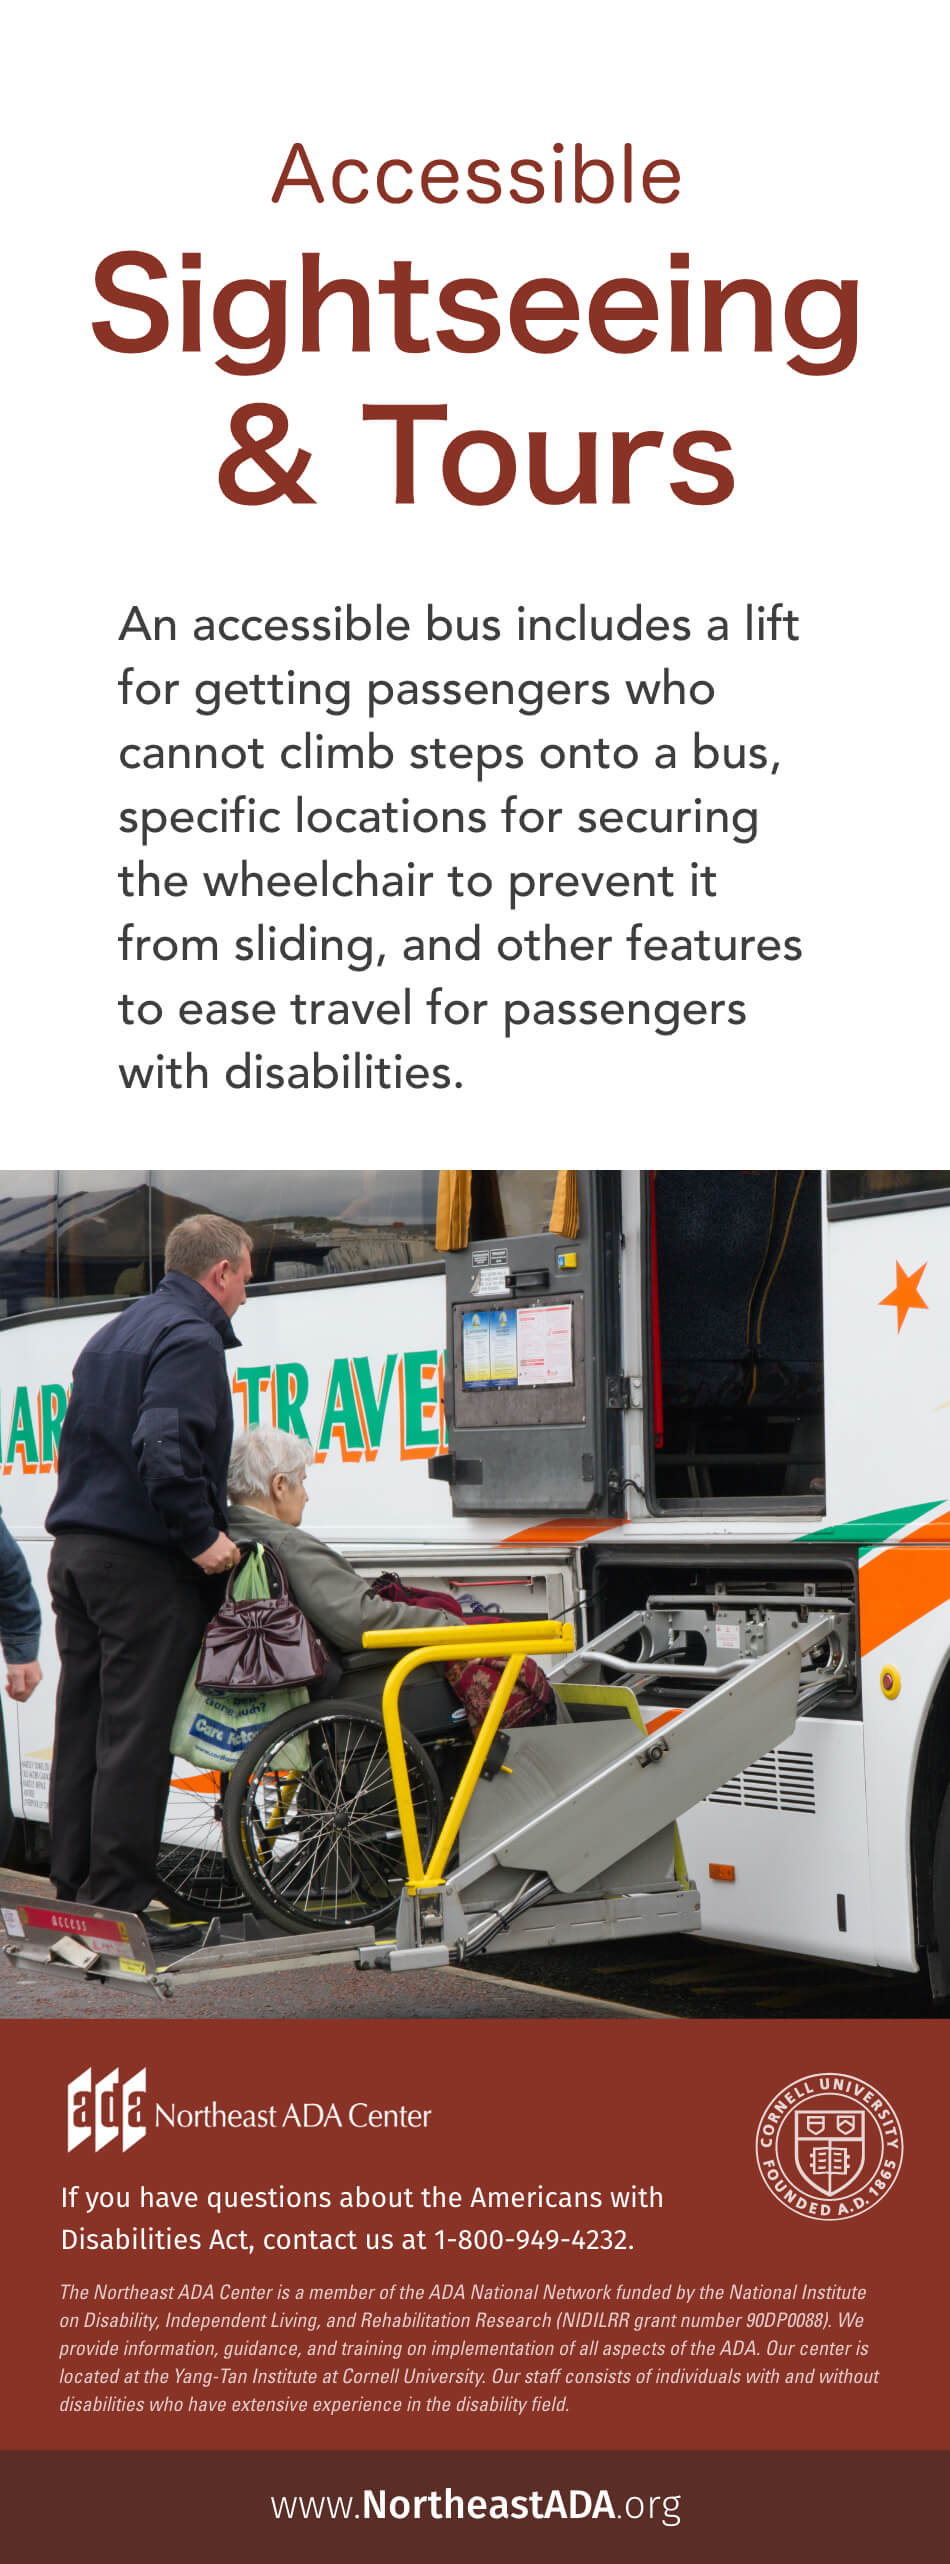 Infographic titled 'Accessible Sightseeing & Tours': An accessible bus includes a lift for getting passengers who cannot climb steps onto a bus, specific locations for securing the wheelchair to prevent it from sliding, and other features to ease travel for passengers with disabilities. If you have questions about the Americans with Disabilities Act, contact us at 1-800-949-4232.